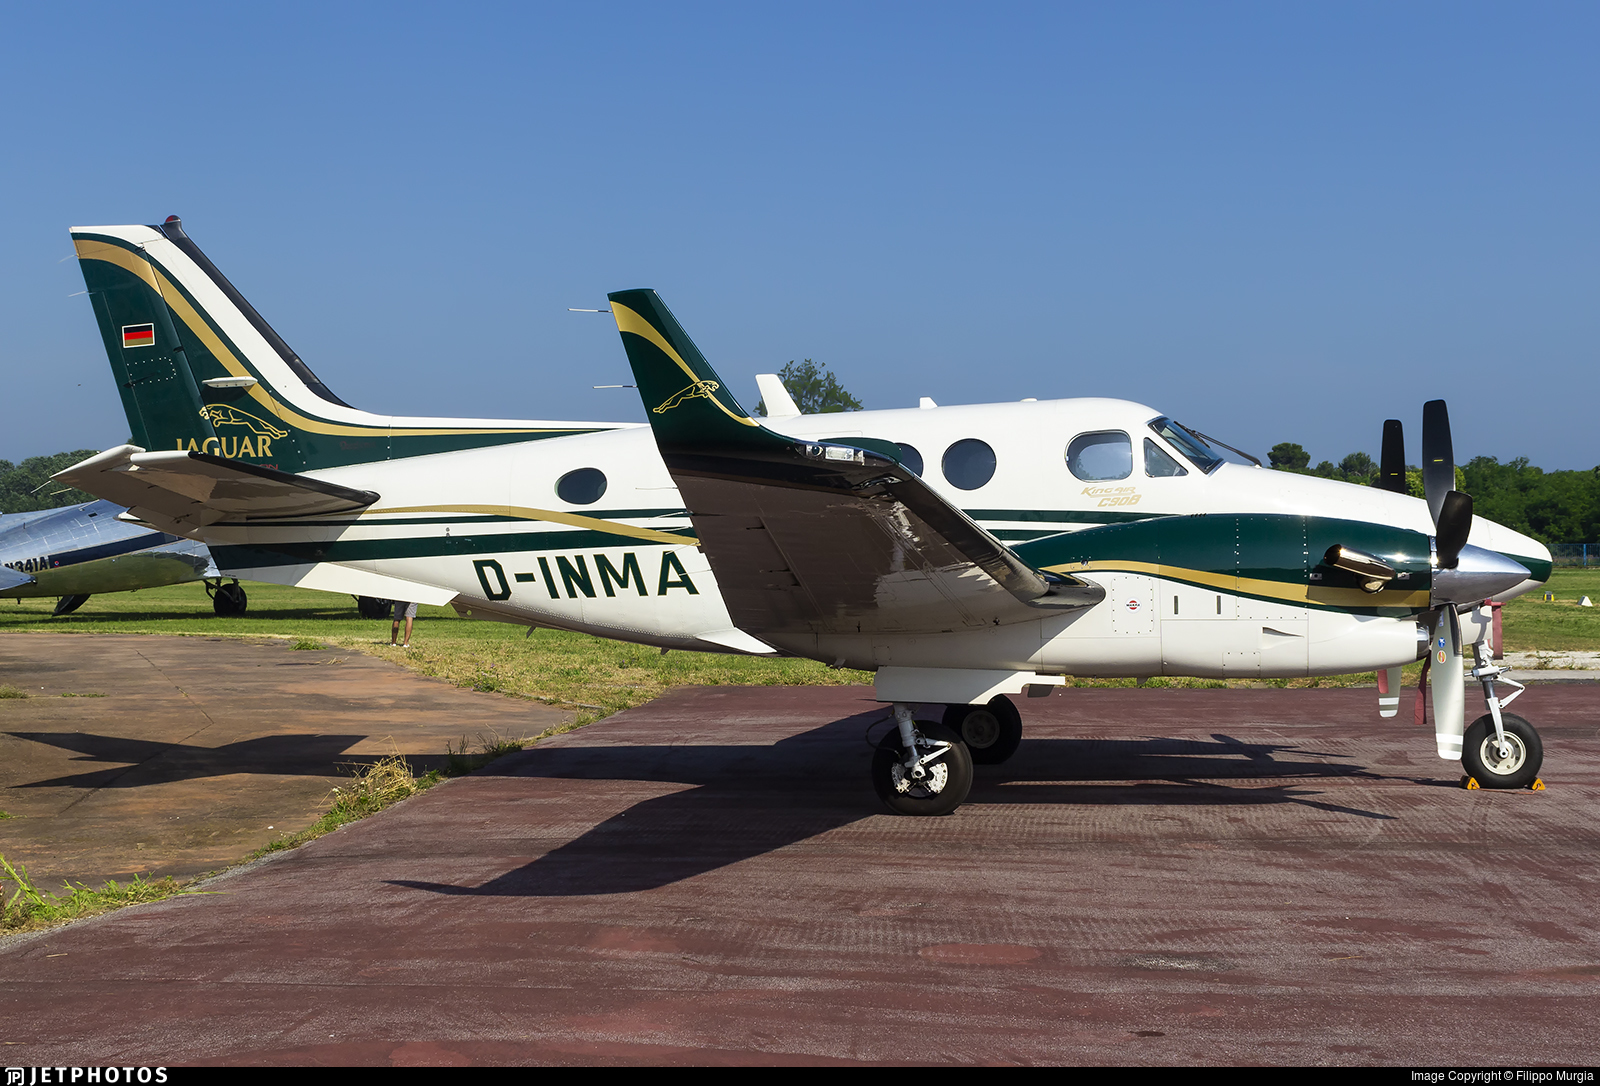 D-INMA - Beechcraft C90B King Air - Private